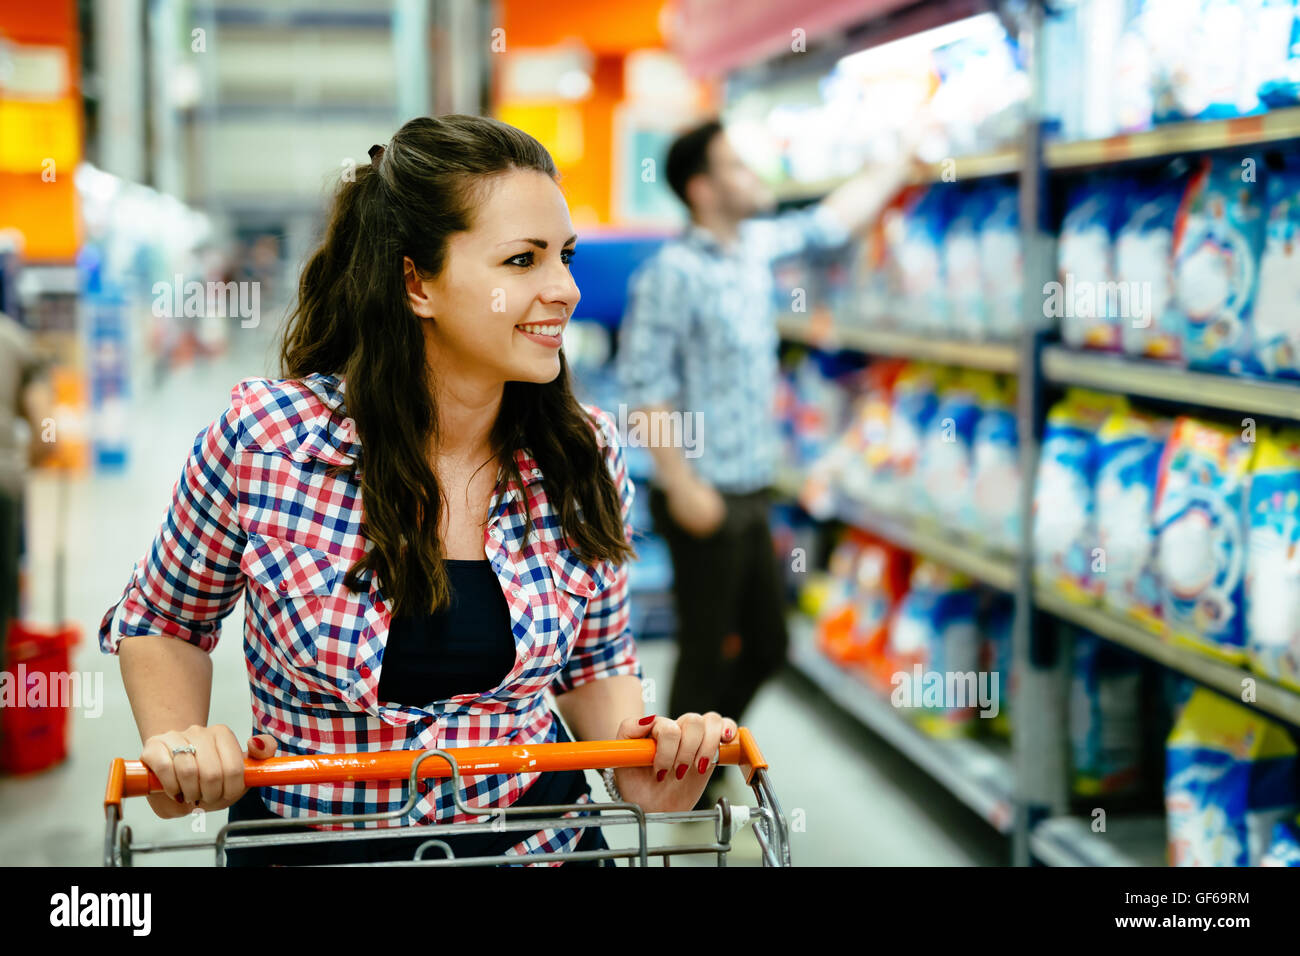 Woman shopping in supermarket and pushing trolley - Stock Image